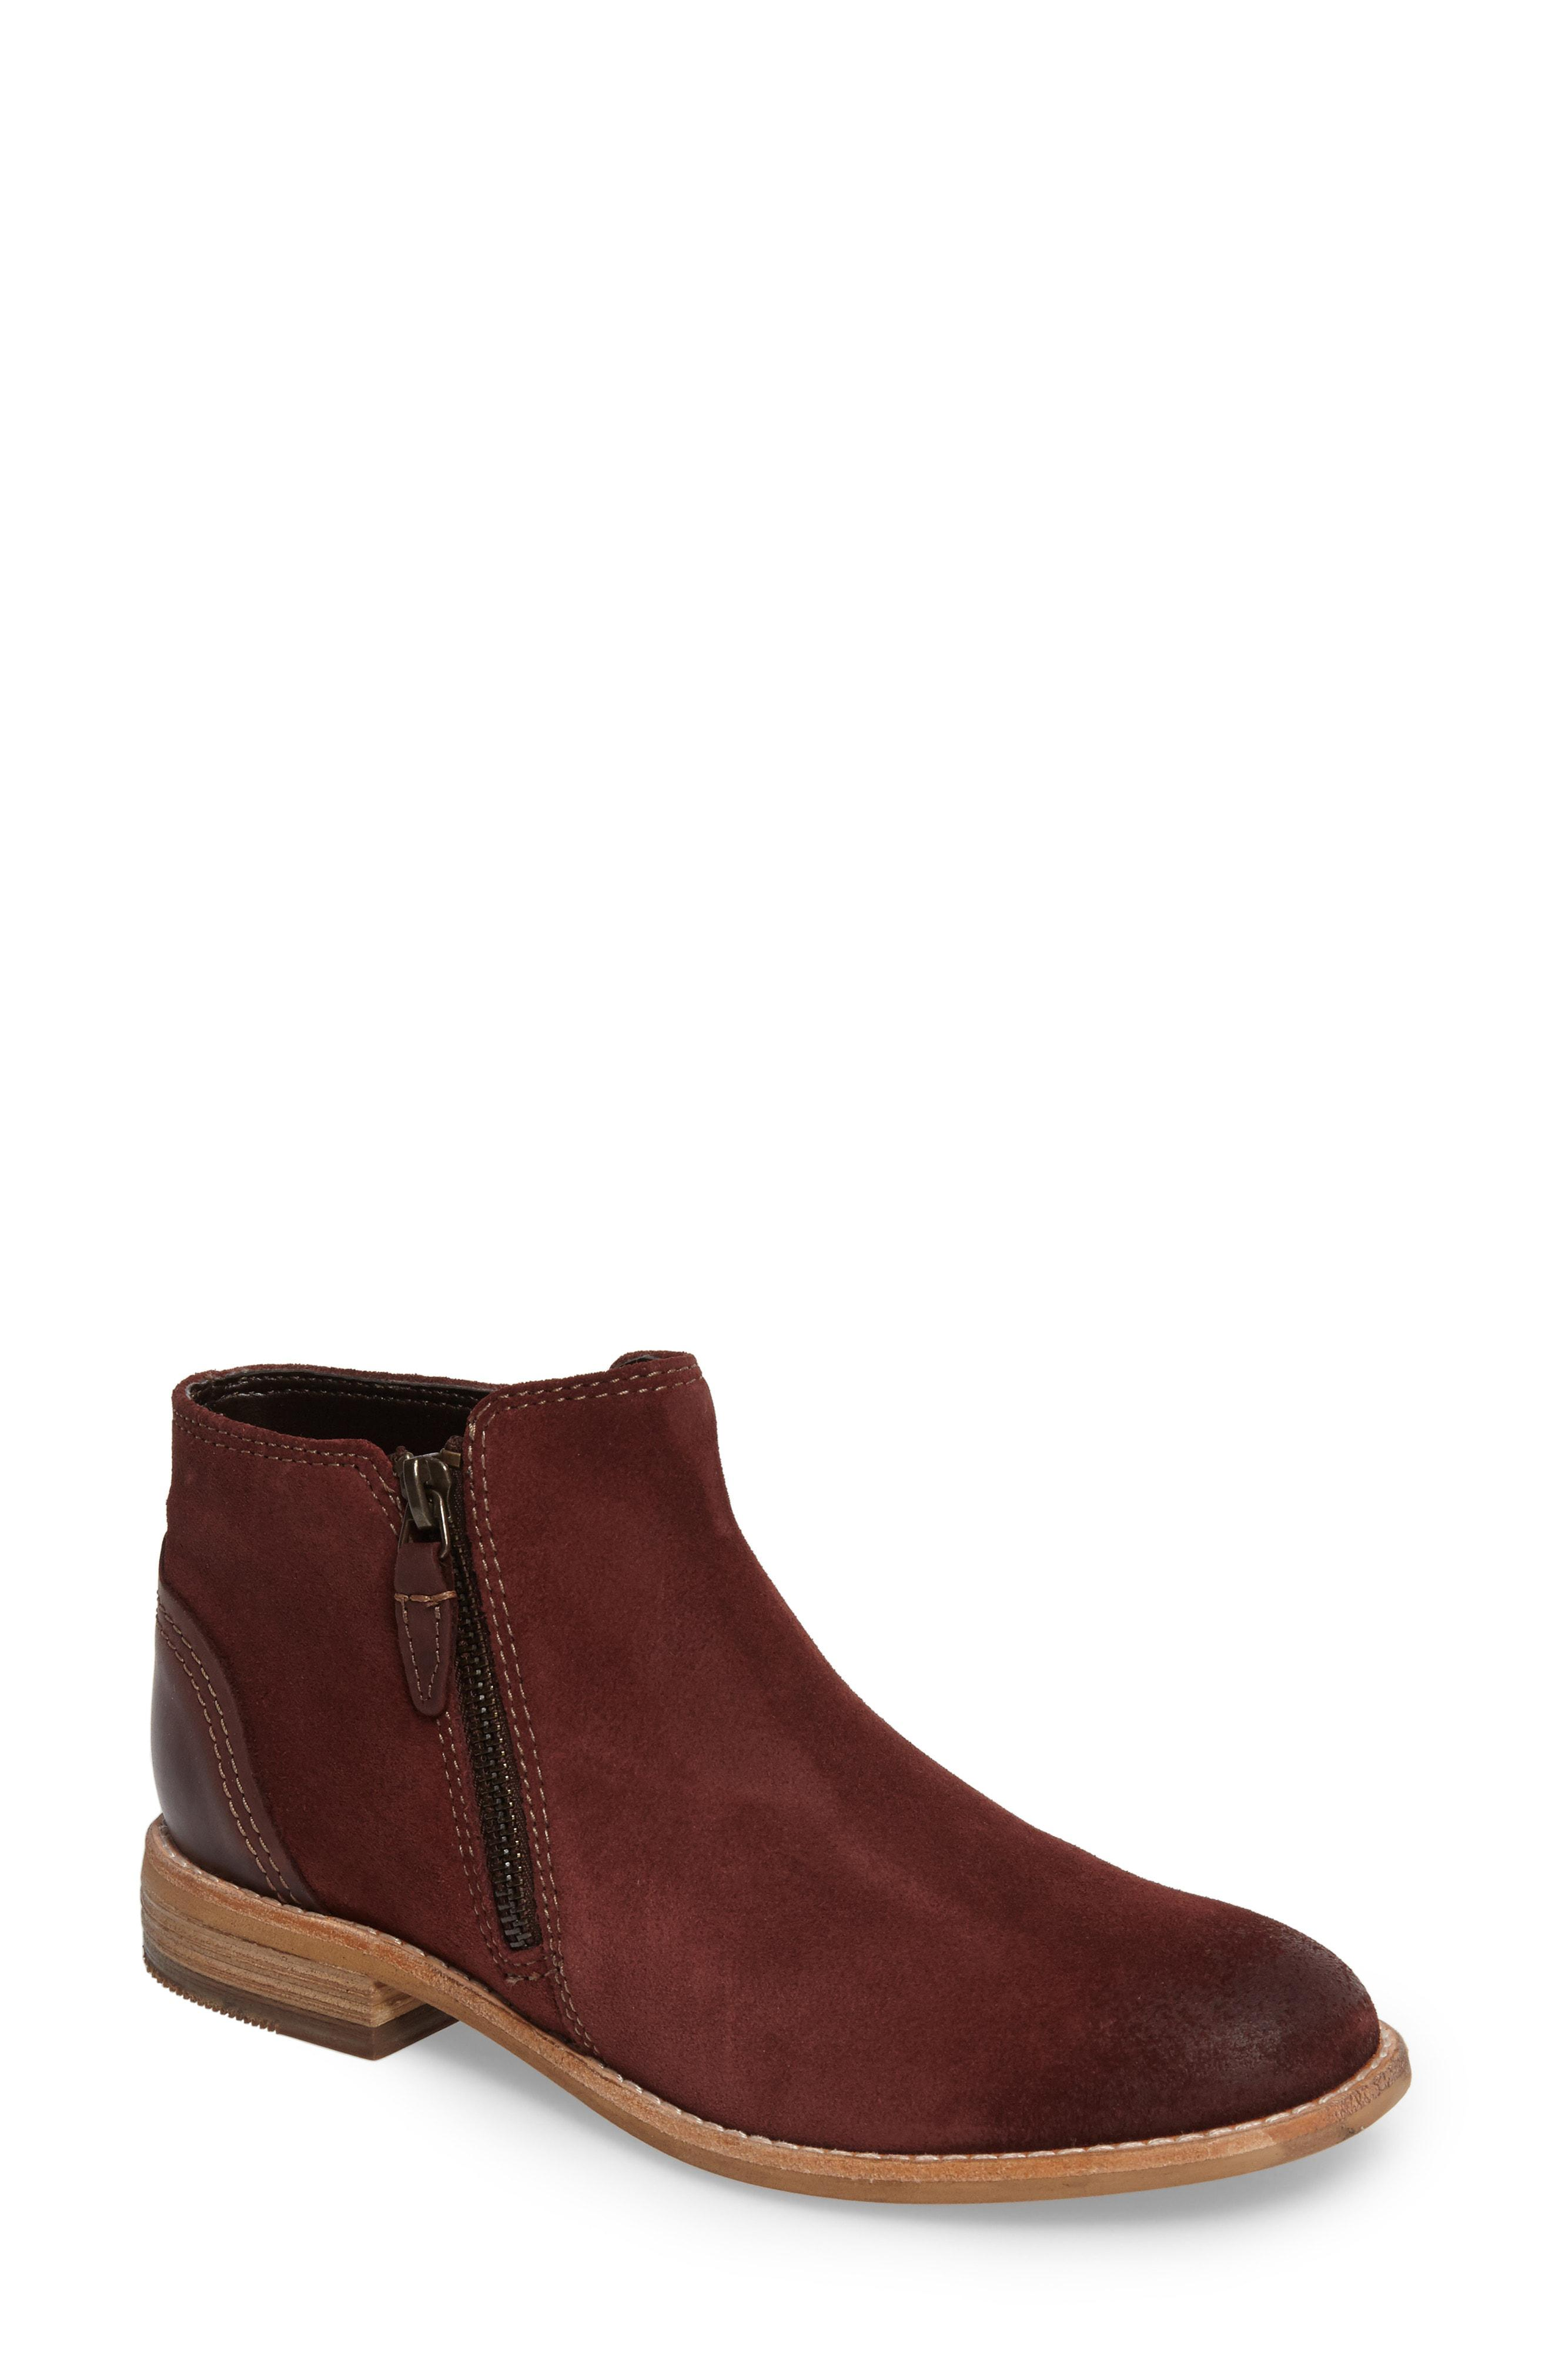 d7bf8d22b345 Lyst - Clarks Clarks Maypearl Juno Ankle Boot in Brown